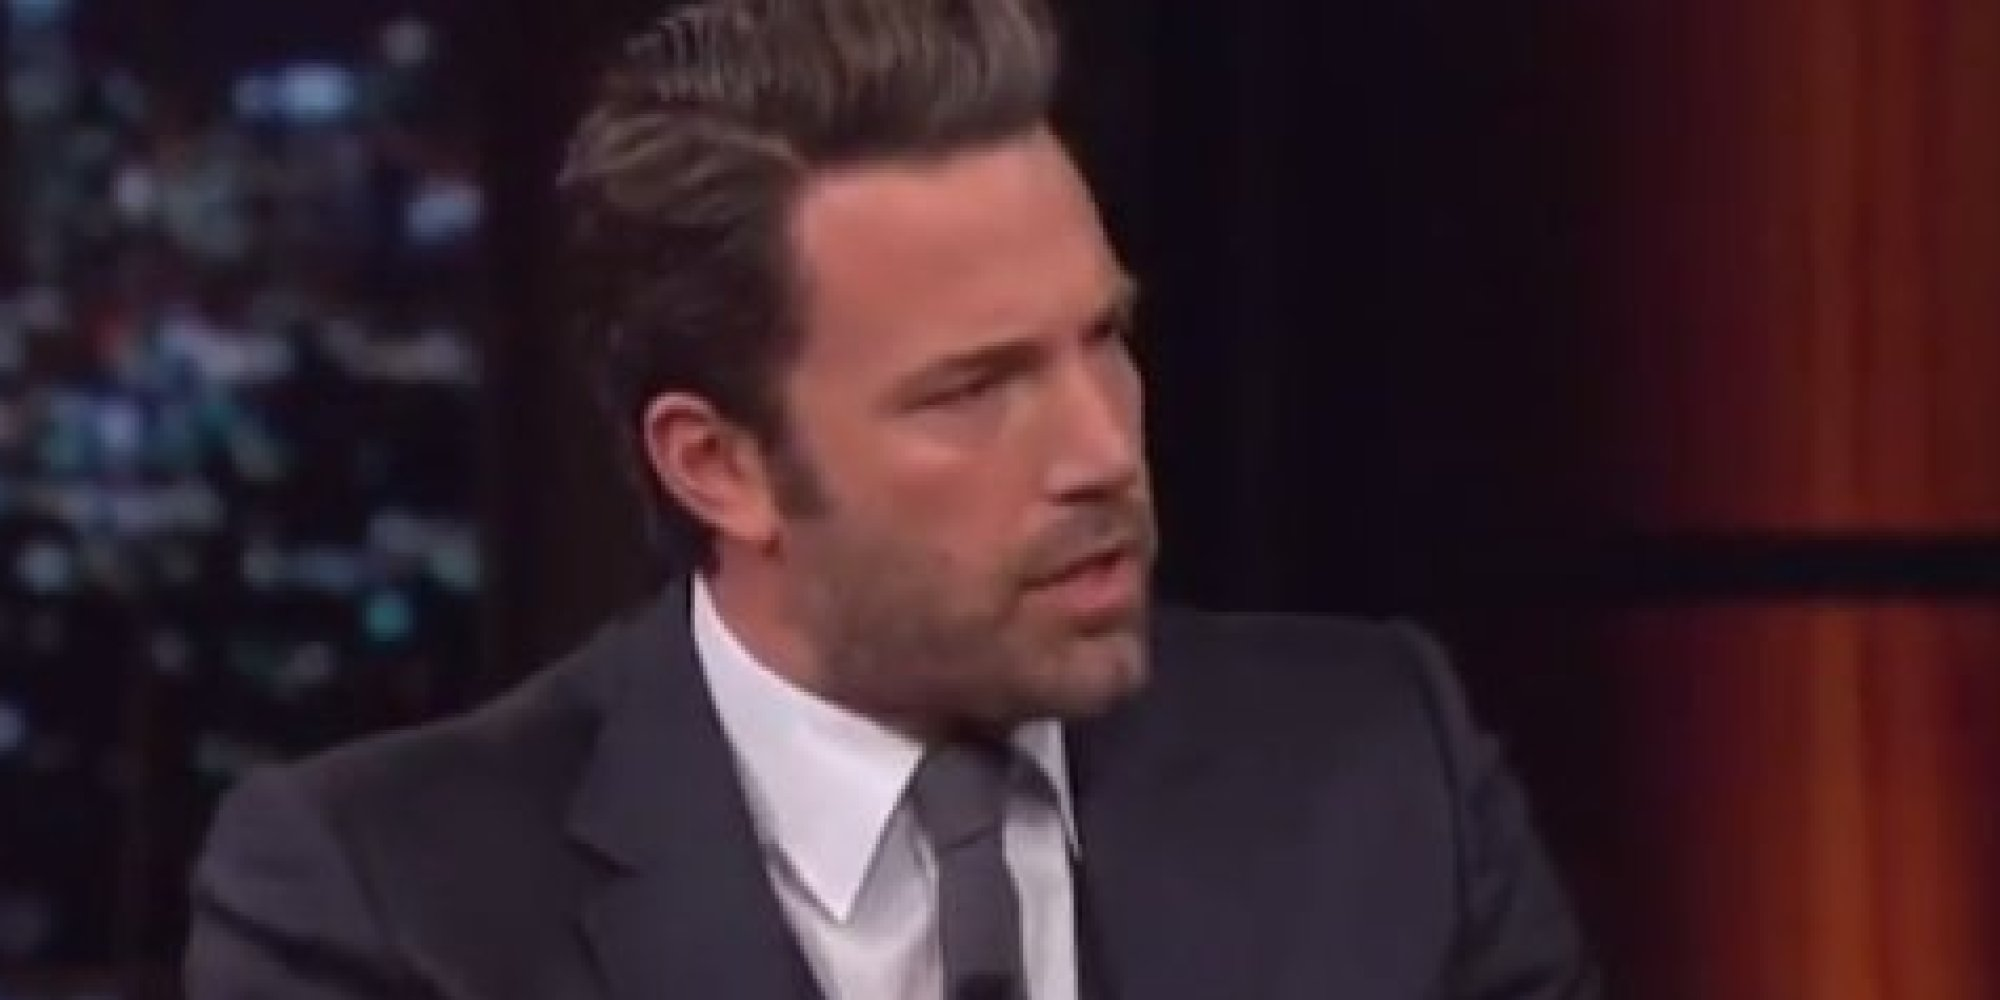 Bill Maher And Ben Affleck Have A Fierce Debate Over Radical Islam Ben Affleck